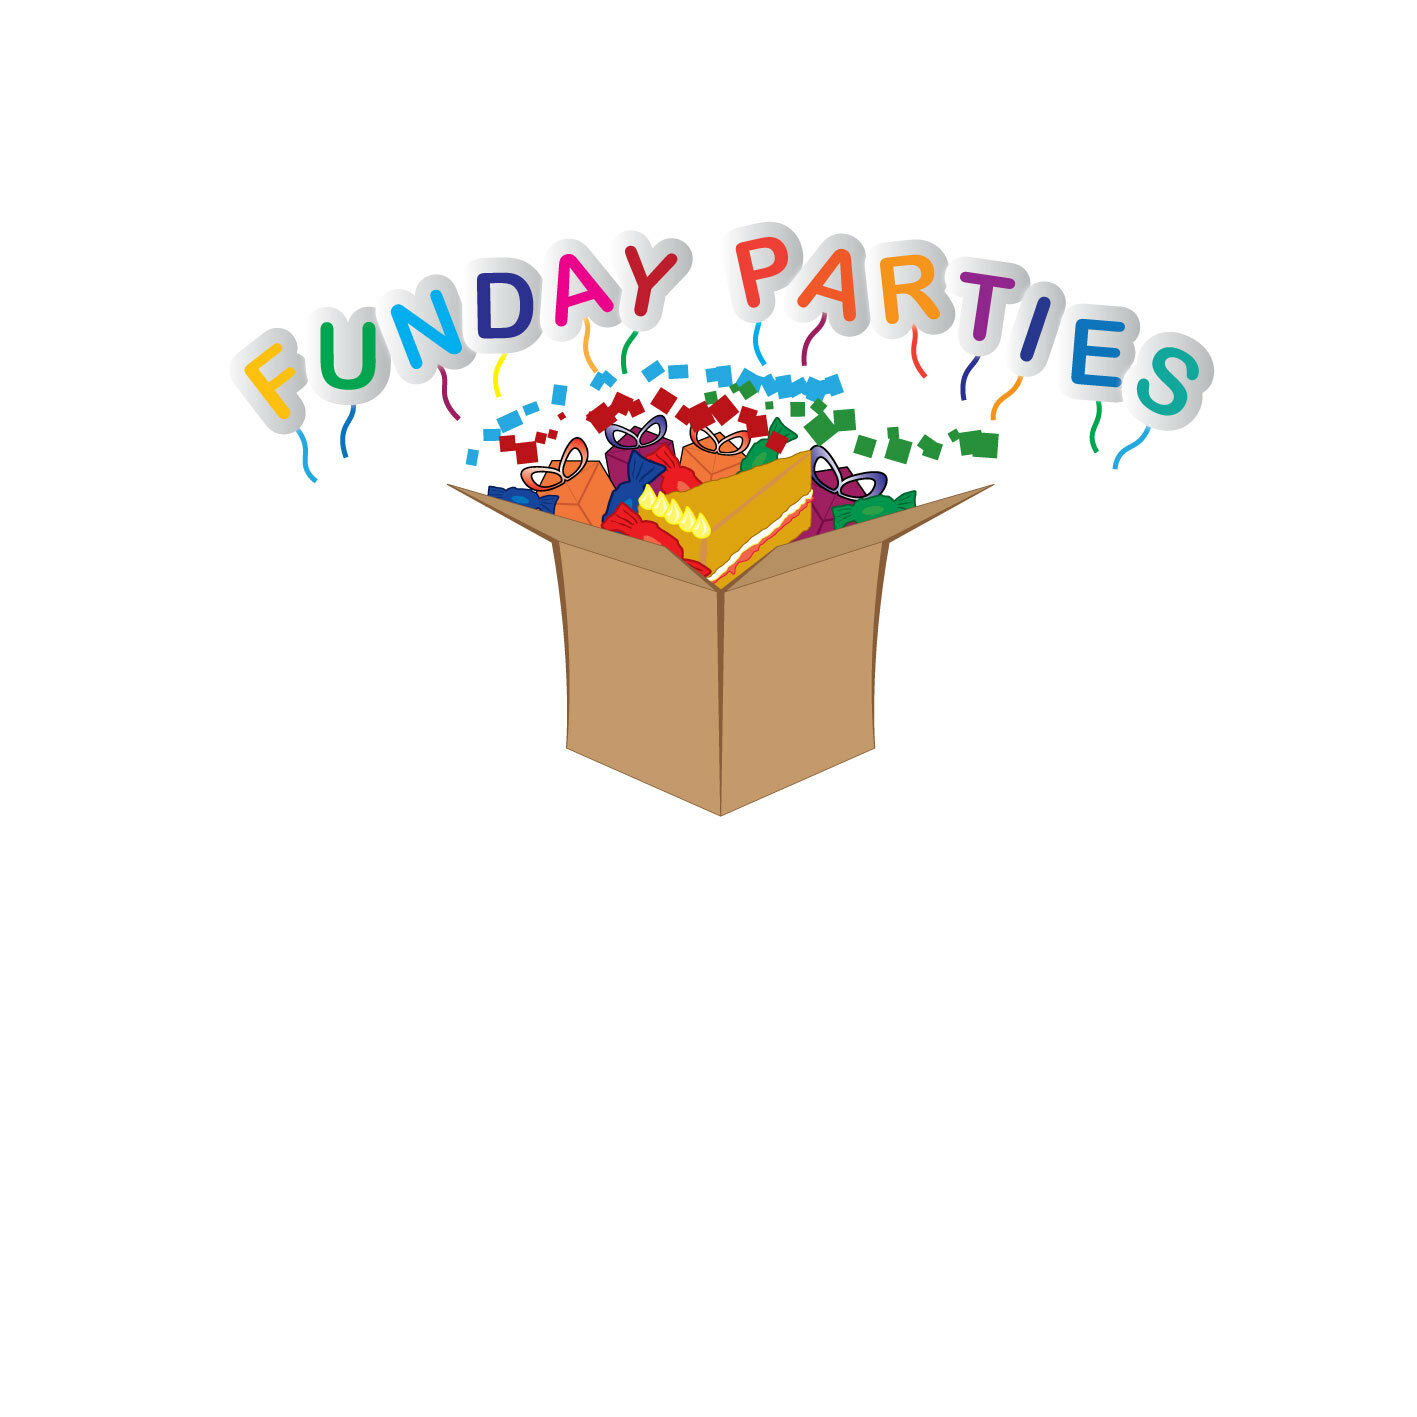 Funday Parties